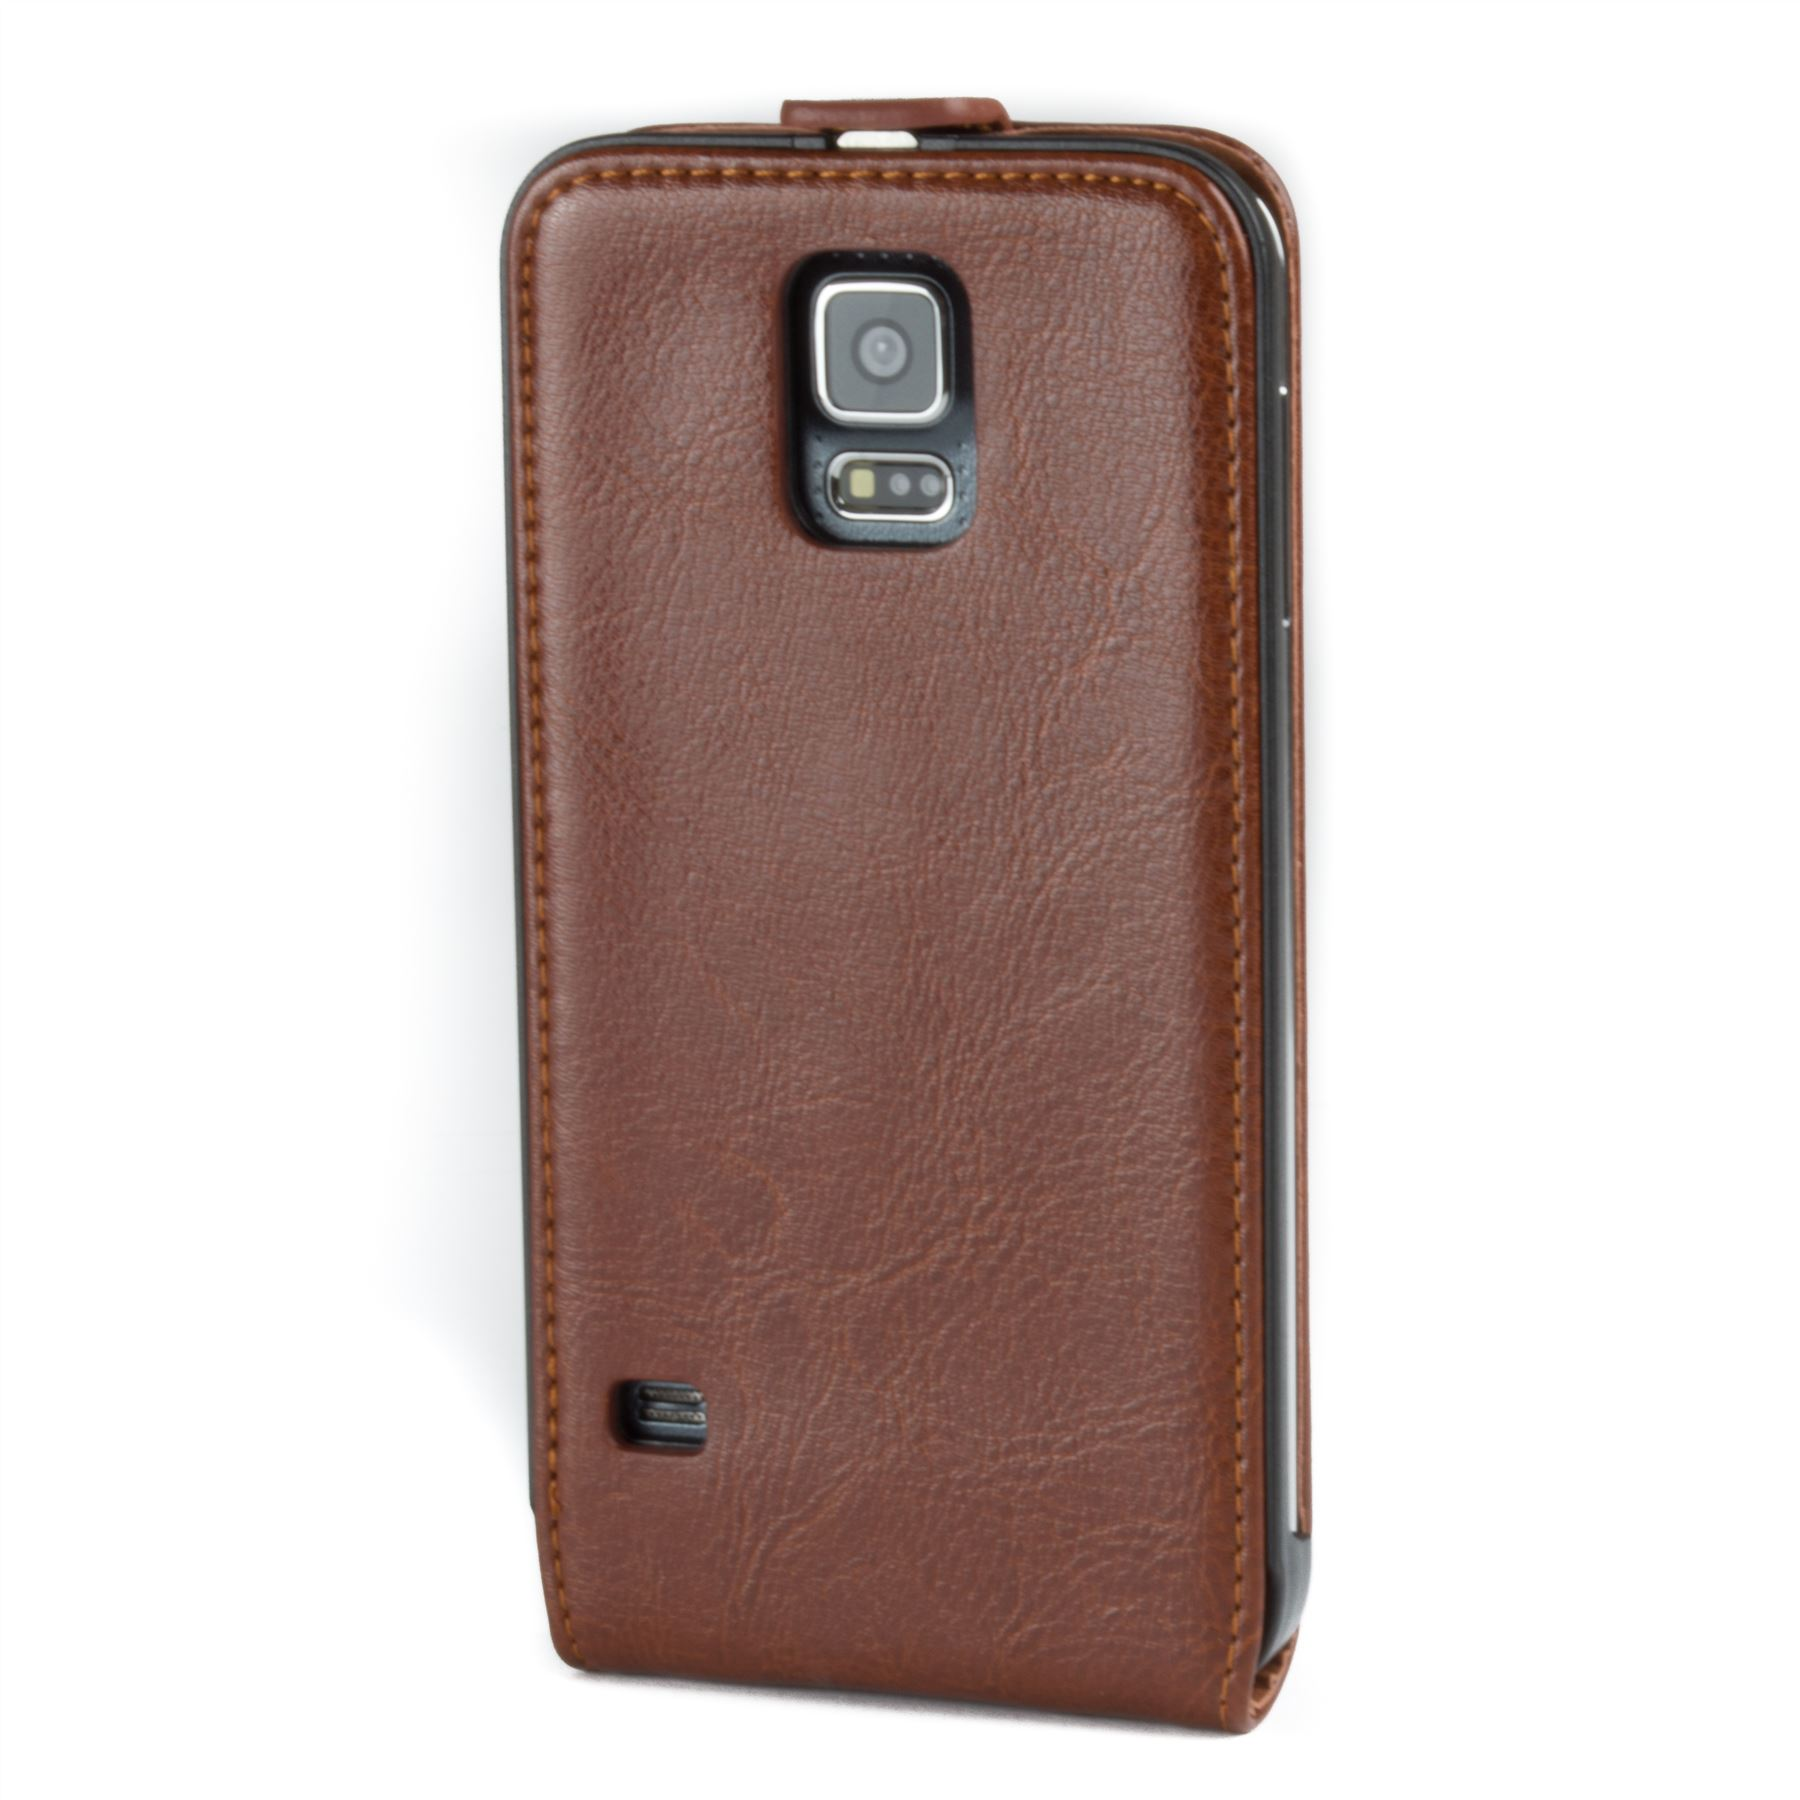 Snakehive-Samsung-Galaxy-S5-Genuine-Classic-Leather-Flip-Case thumbnail 22